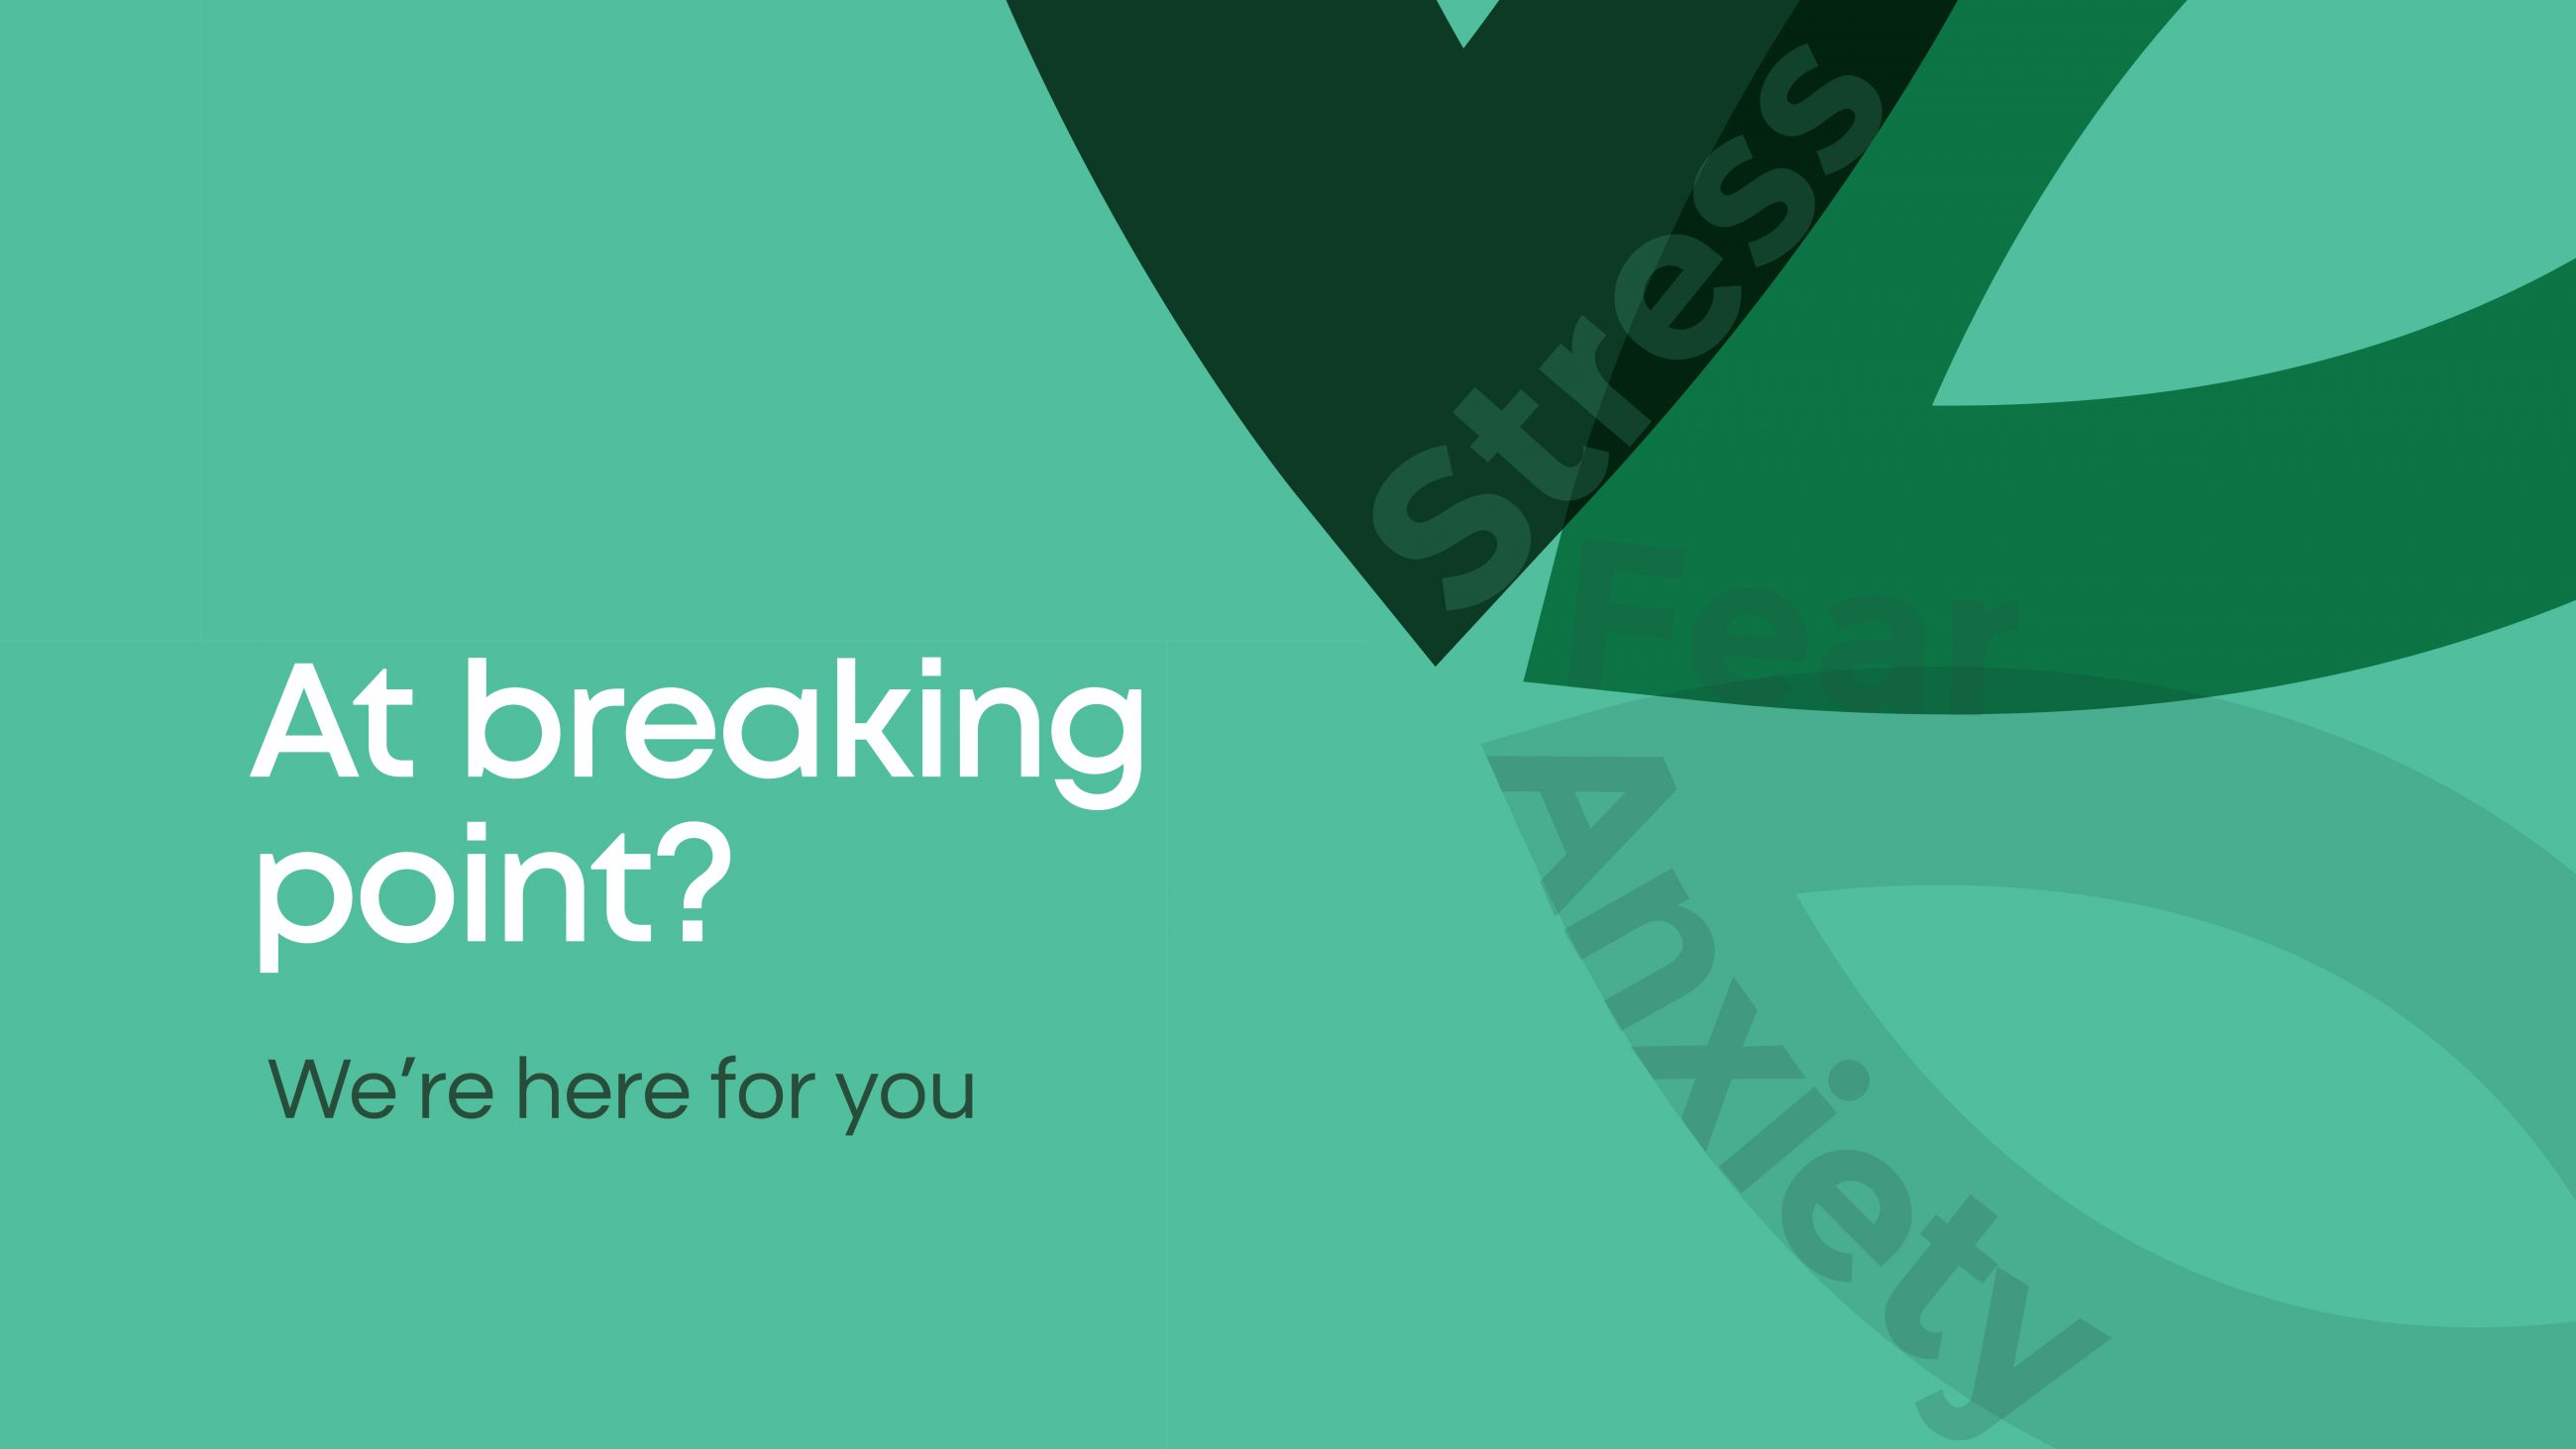 Visual identity campaign for Acacia Connections Brisbane - At breaking point?